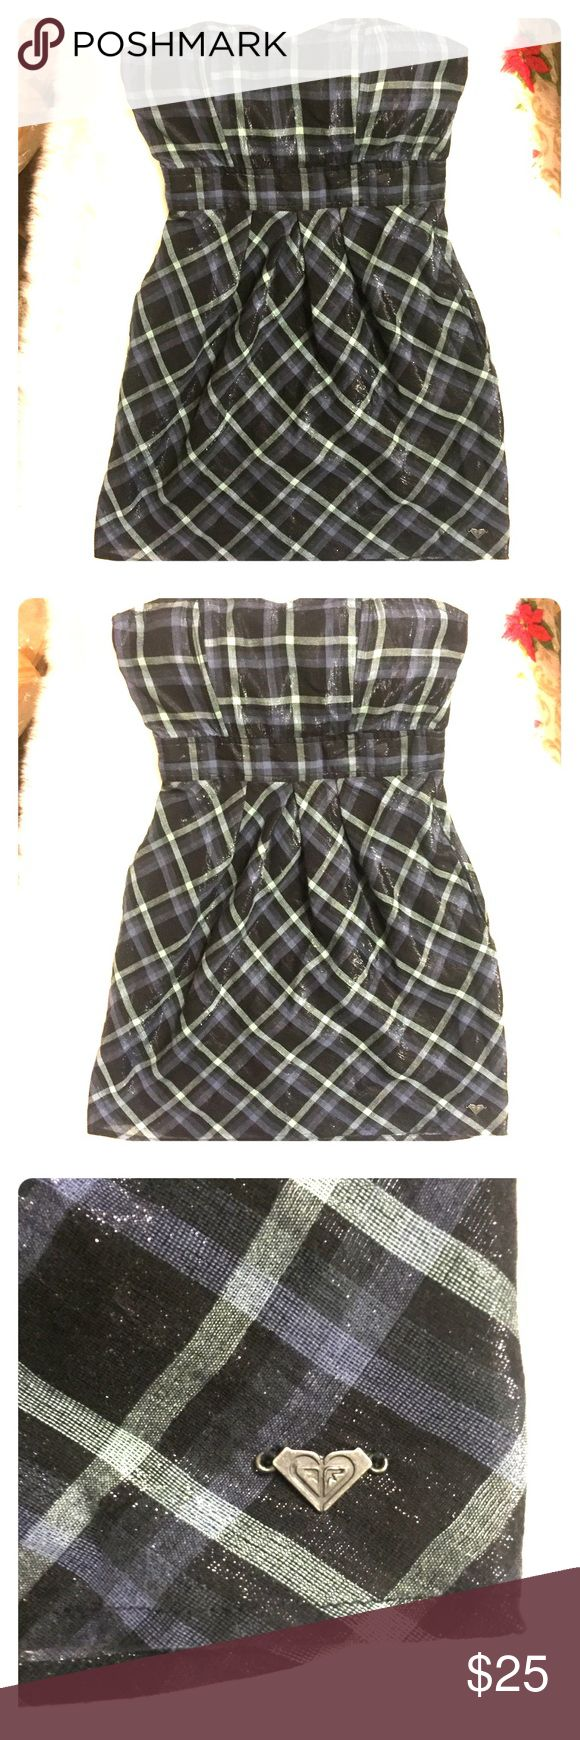 """Small Strapless Metallic Plaid Roxy Dress Approximately 25"""" length. Fully lined. 24"""" waist unstretched. Smocked elastic back. In EUC!! Plastic stays (I think that's what they are called) in the bodice front to keep the shape, like a corset- one on each side.  Wear casually with jean jacket and converse. Dress up with a black shrug and Platform heels. Roxy Dresses Strapless"""